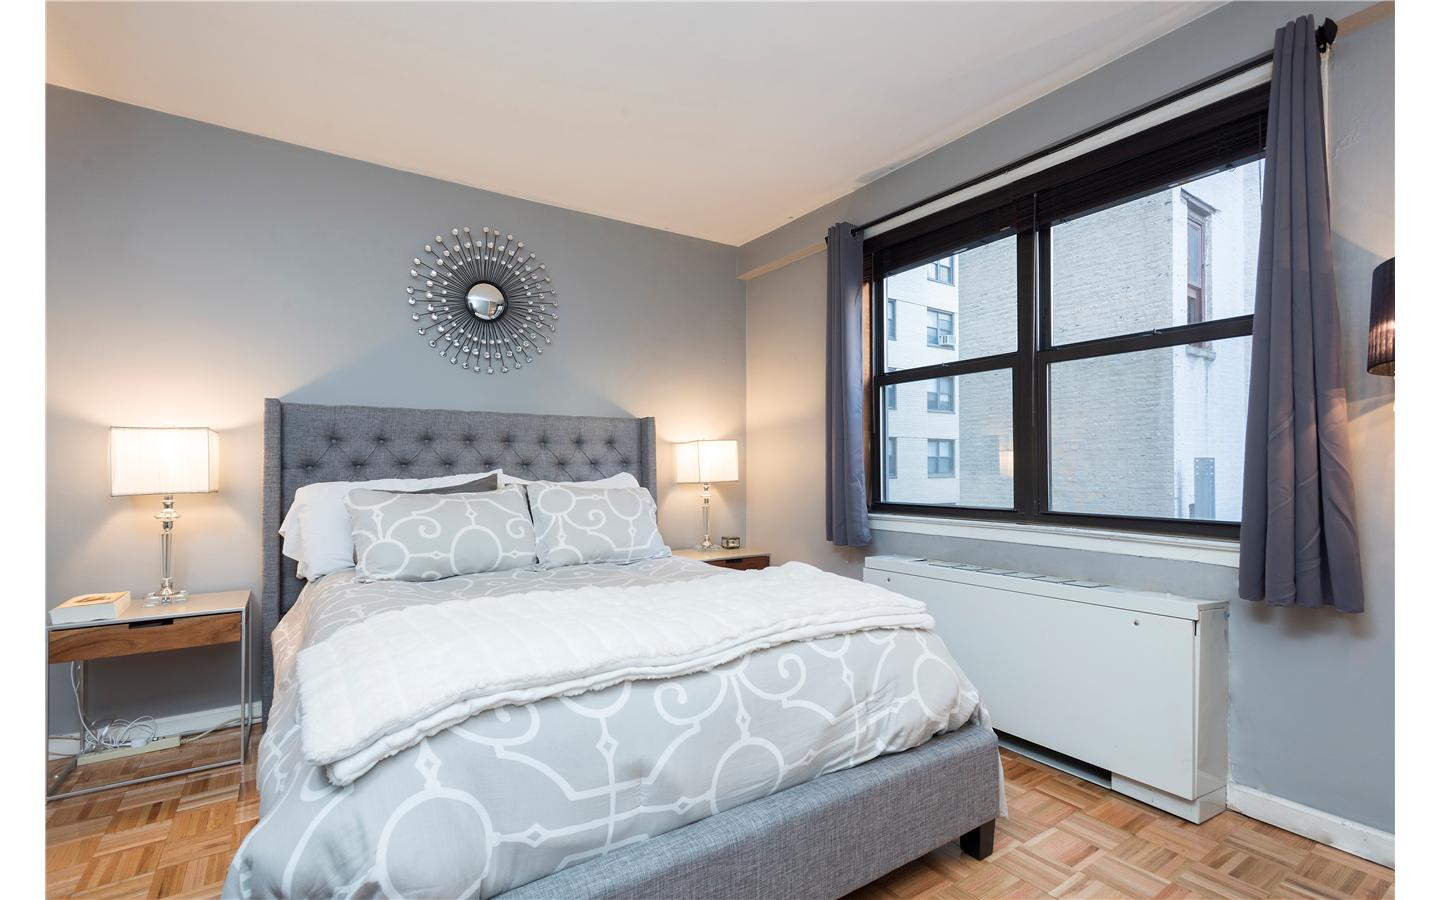 No Fee Rentals 2017 500 Per Month Room For Rent Pvt Full Bathroom Share 2 Bedroom West Village